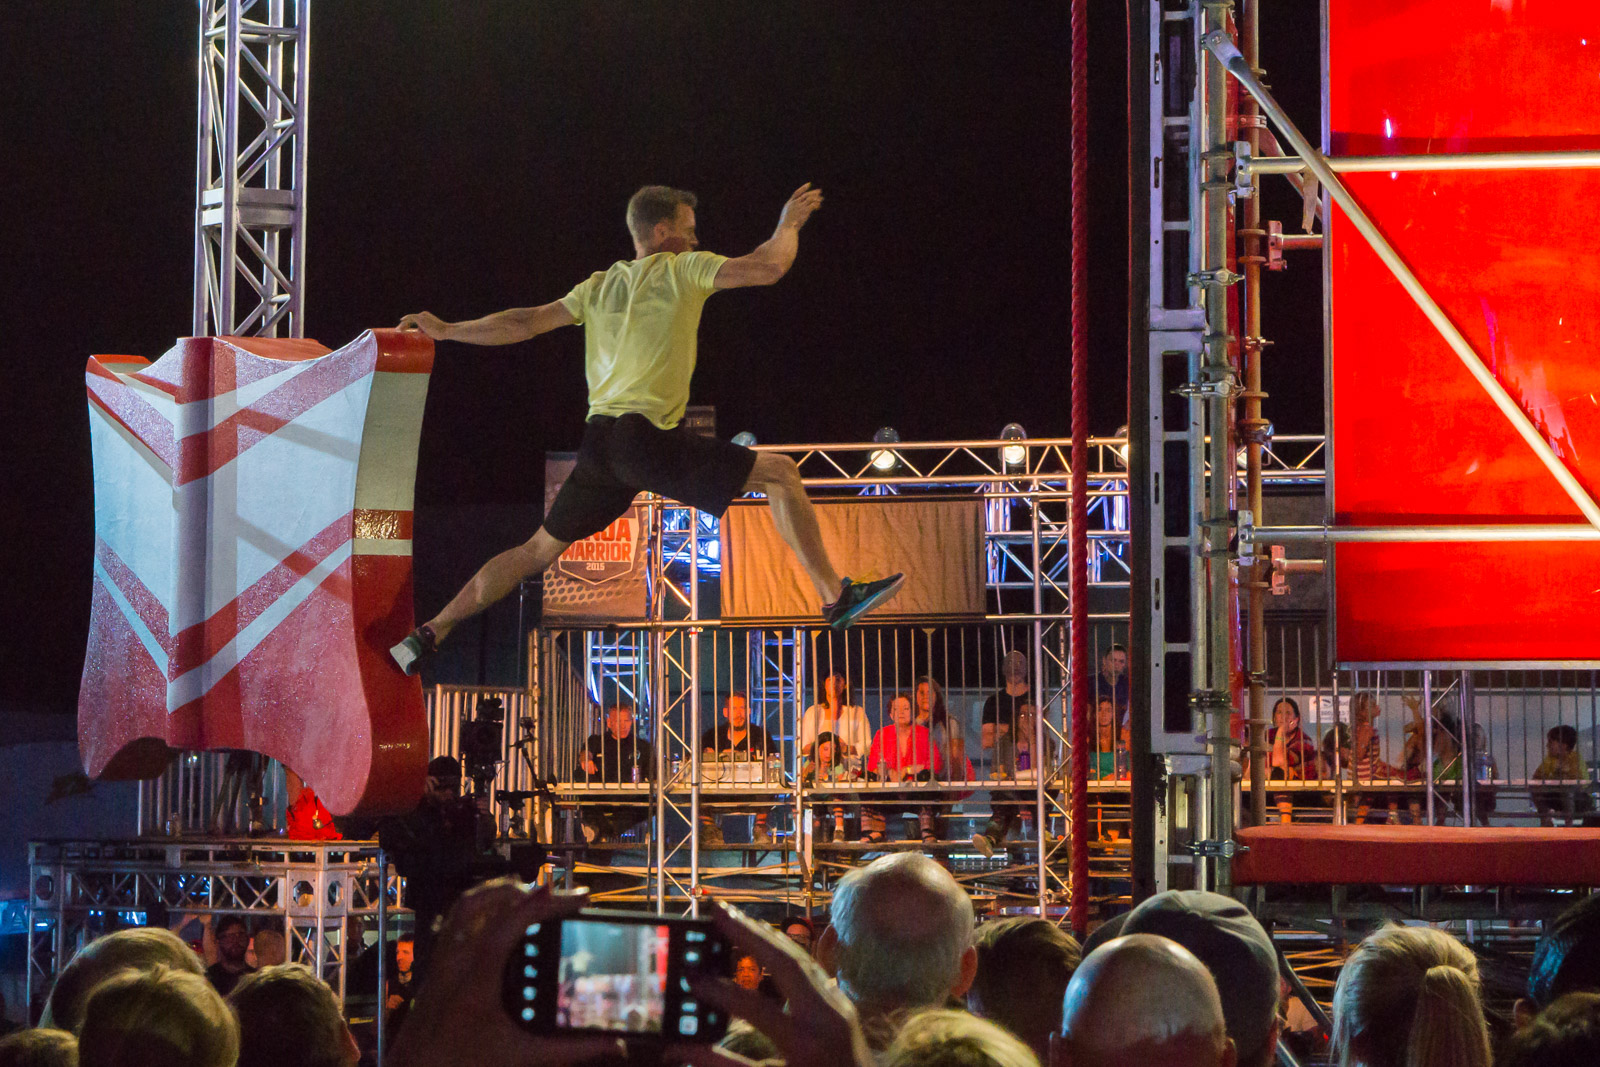 """Geoff Britten leaps from one obstacle to the next during his in Season 7 of """"American Ninja Warrior."""" (Photo courtesy of Geoff Britten)"""